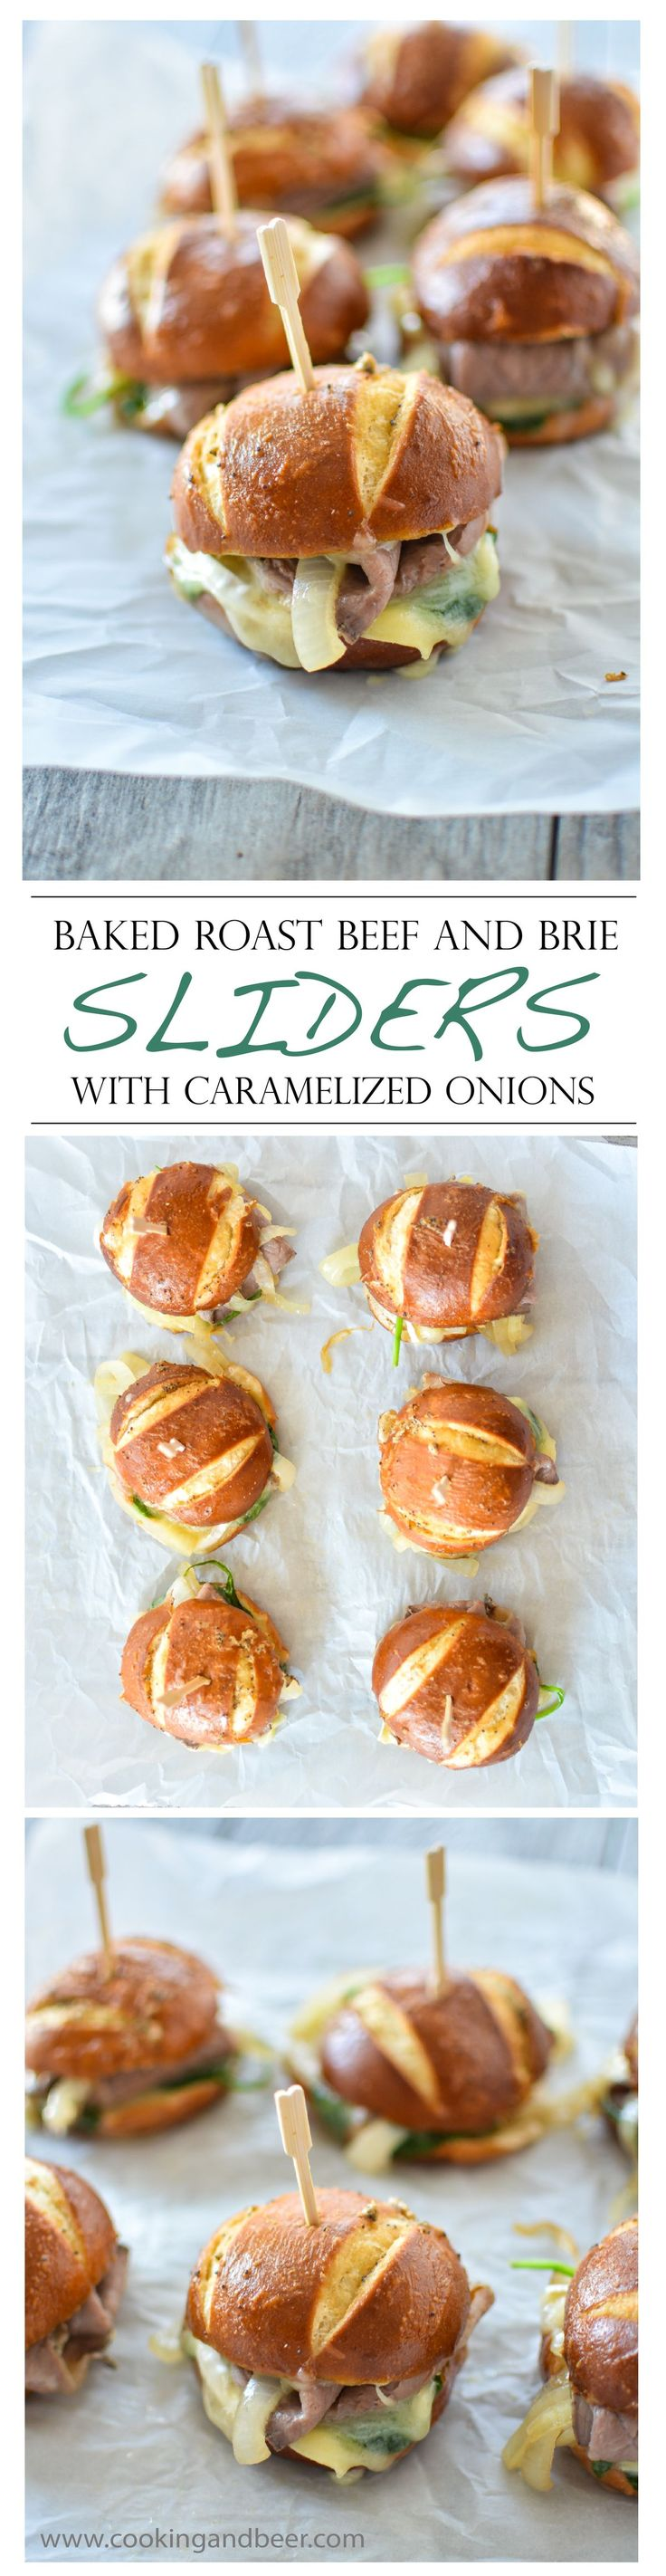 Baked Roast Beef and Brie Sliders with Caramelized Onions...the perfect pairing for the big game!